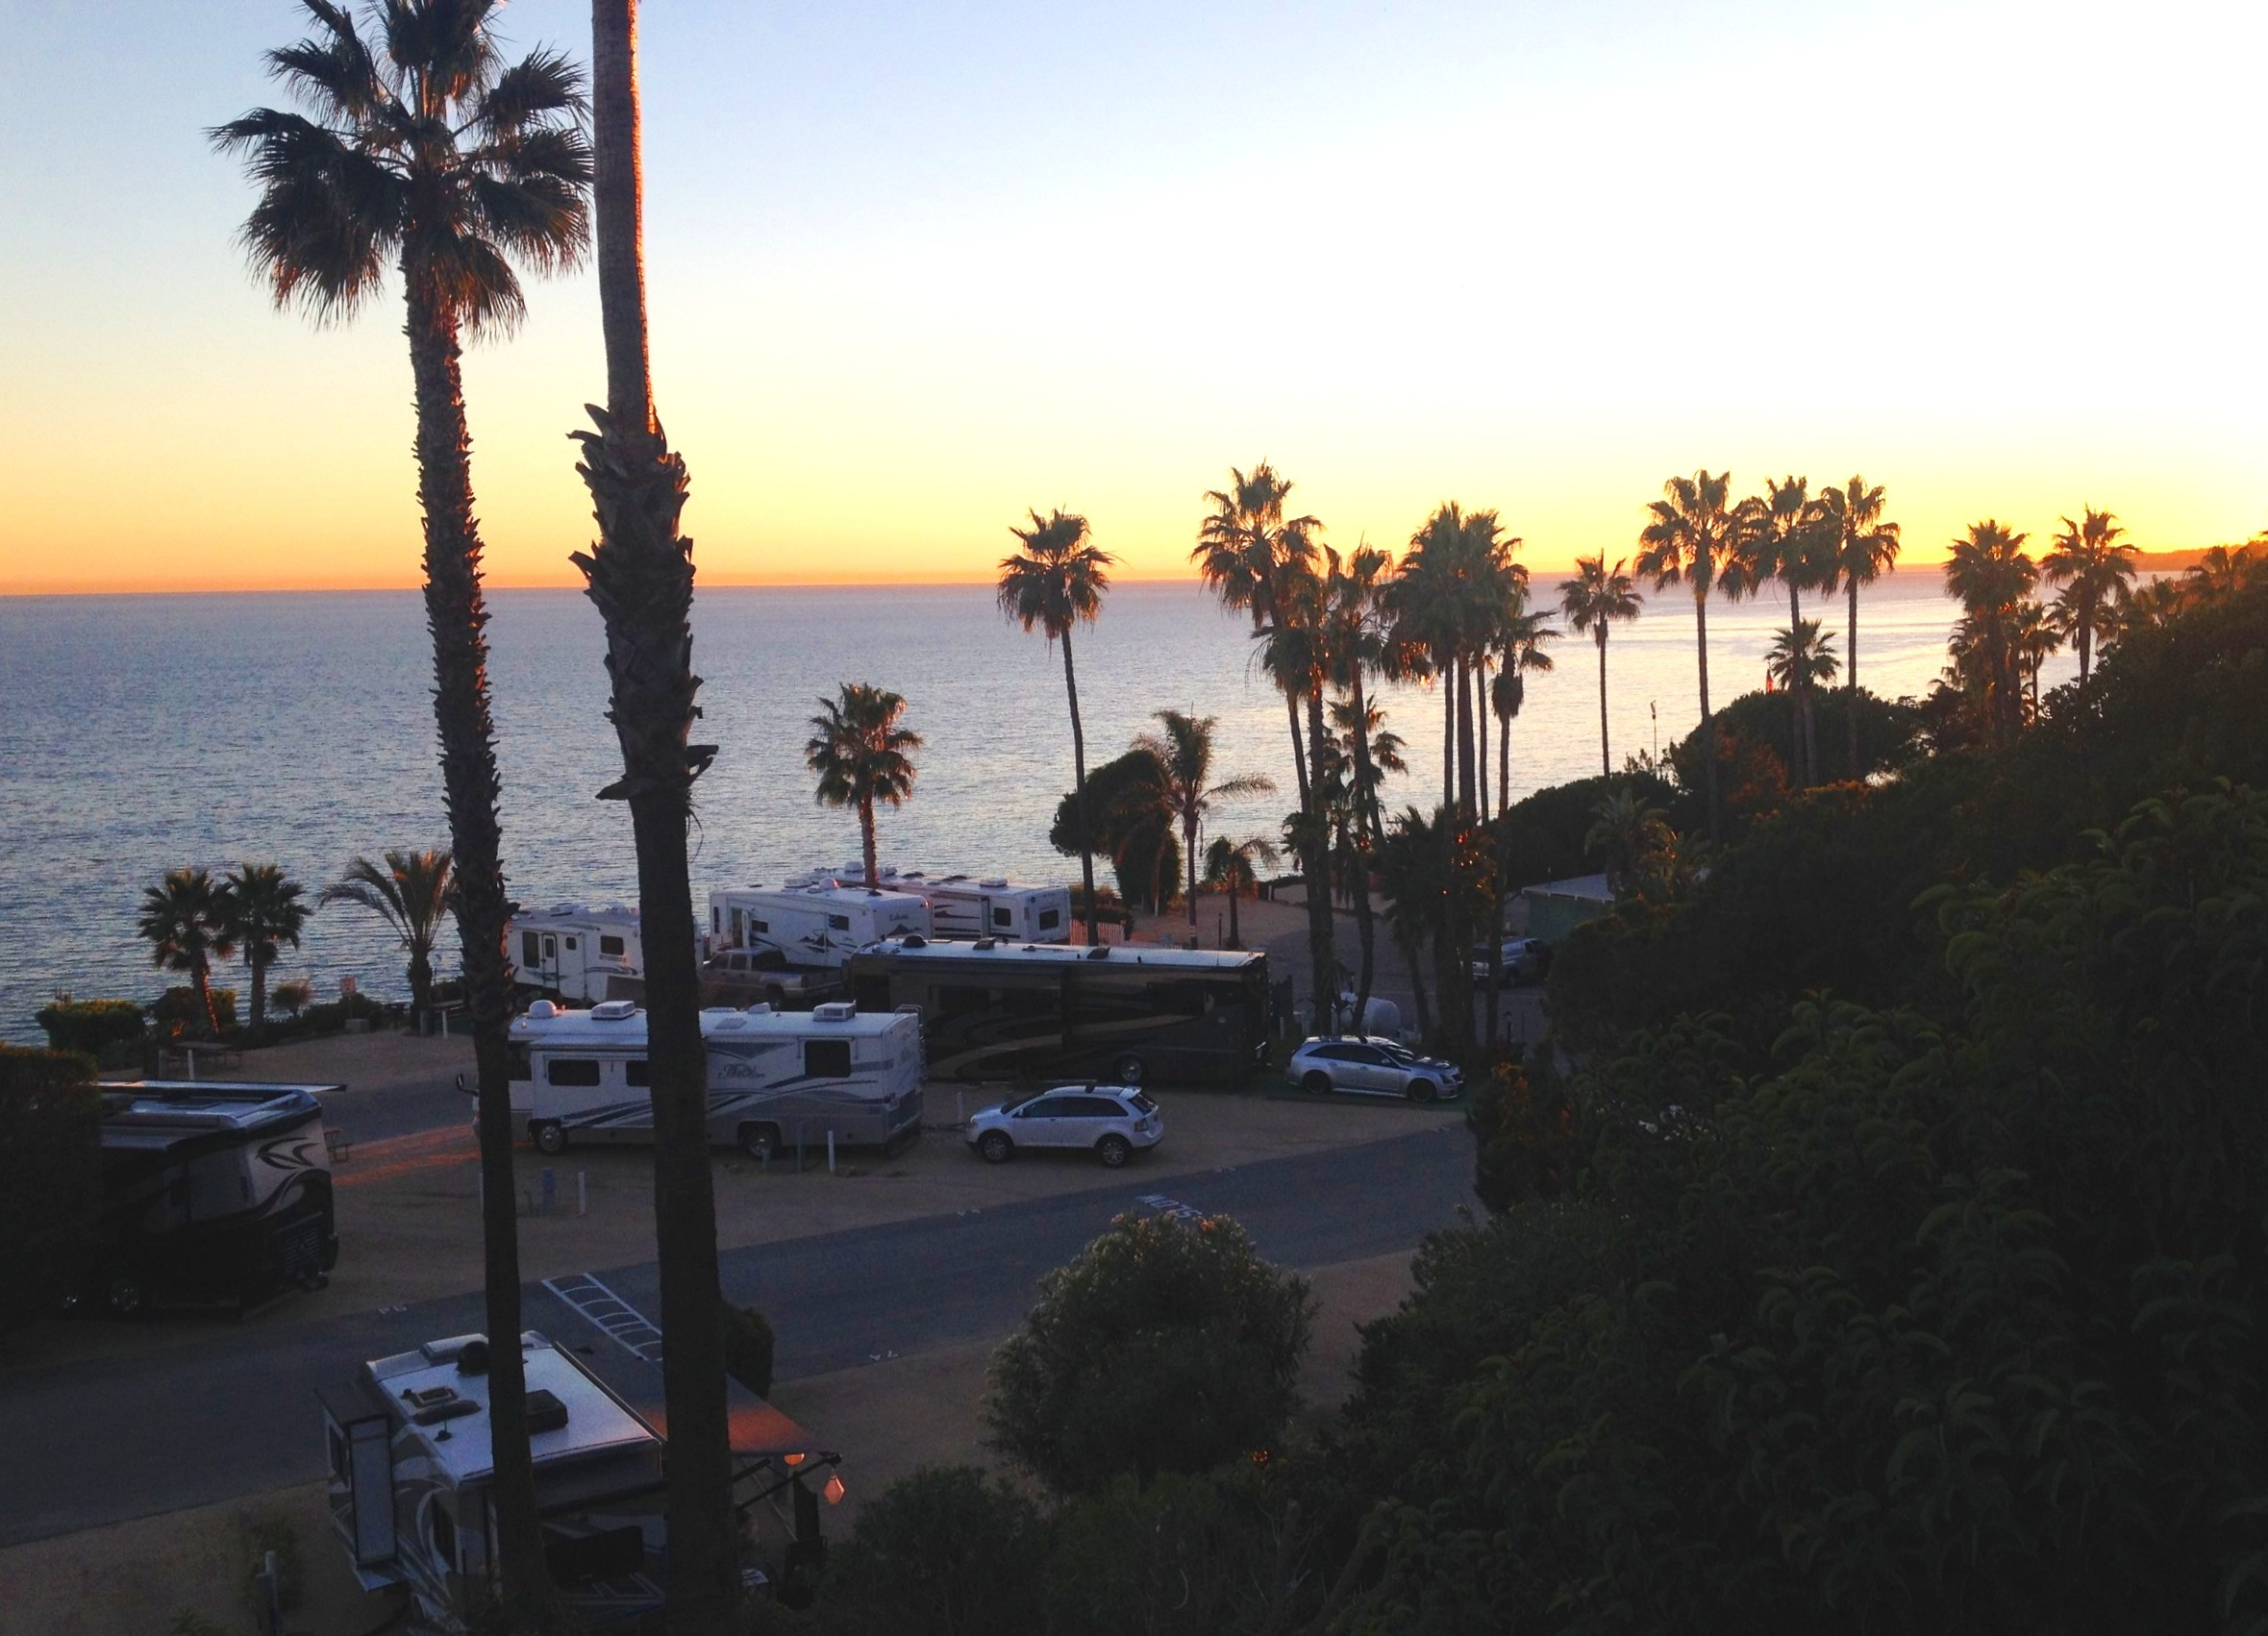 The view from our campground in Malibu, California.